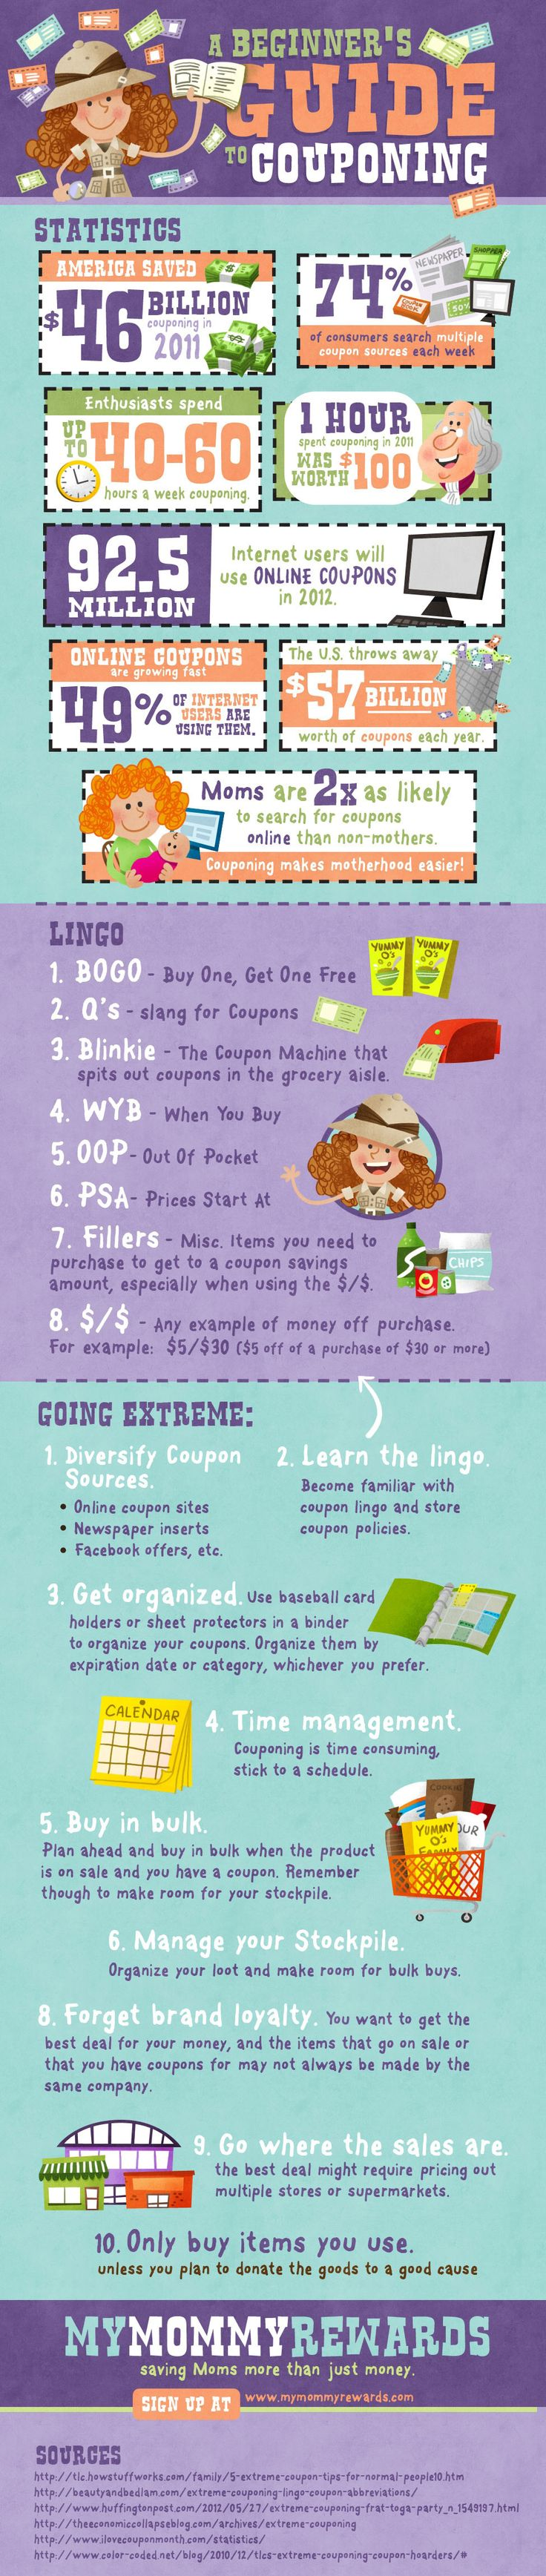 Free Guide to Couponing *Very good infographic for beginners!*